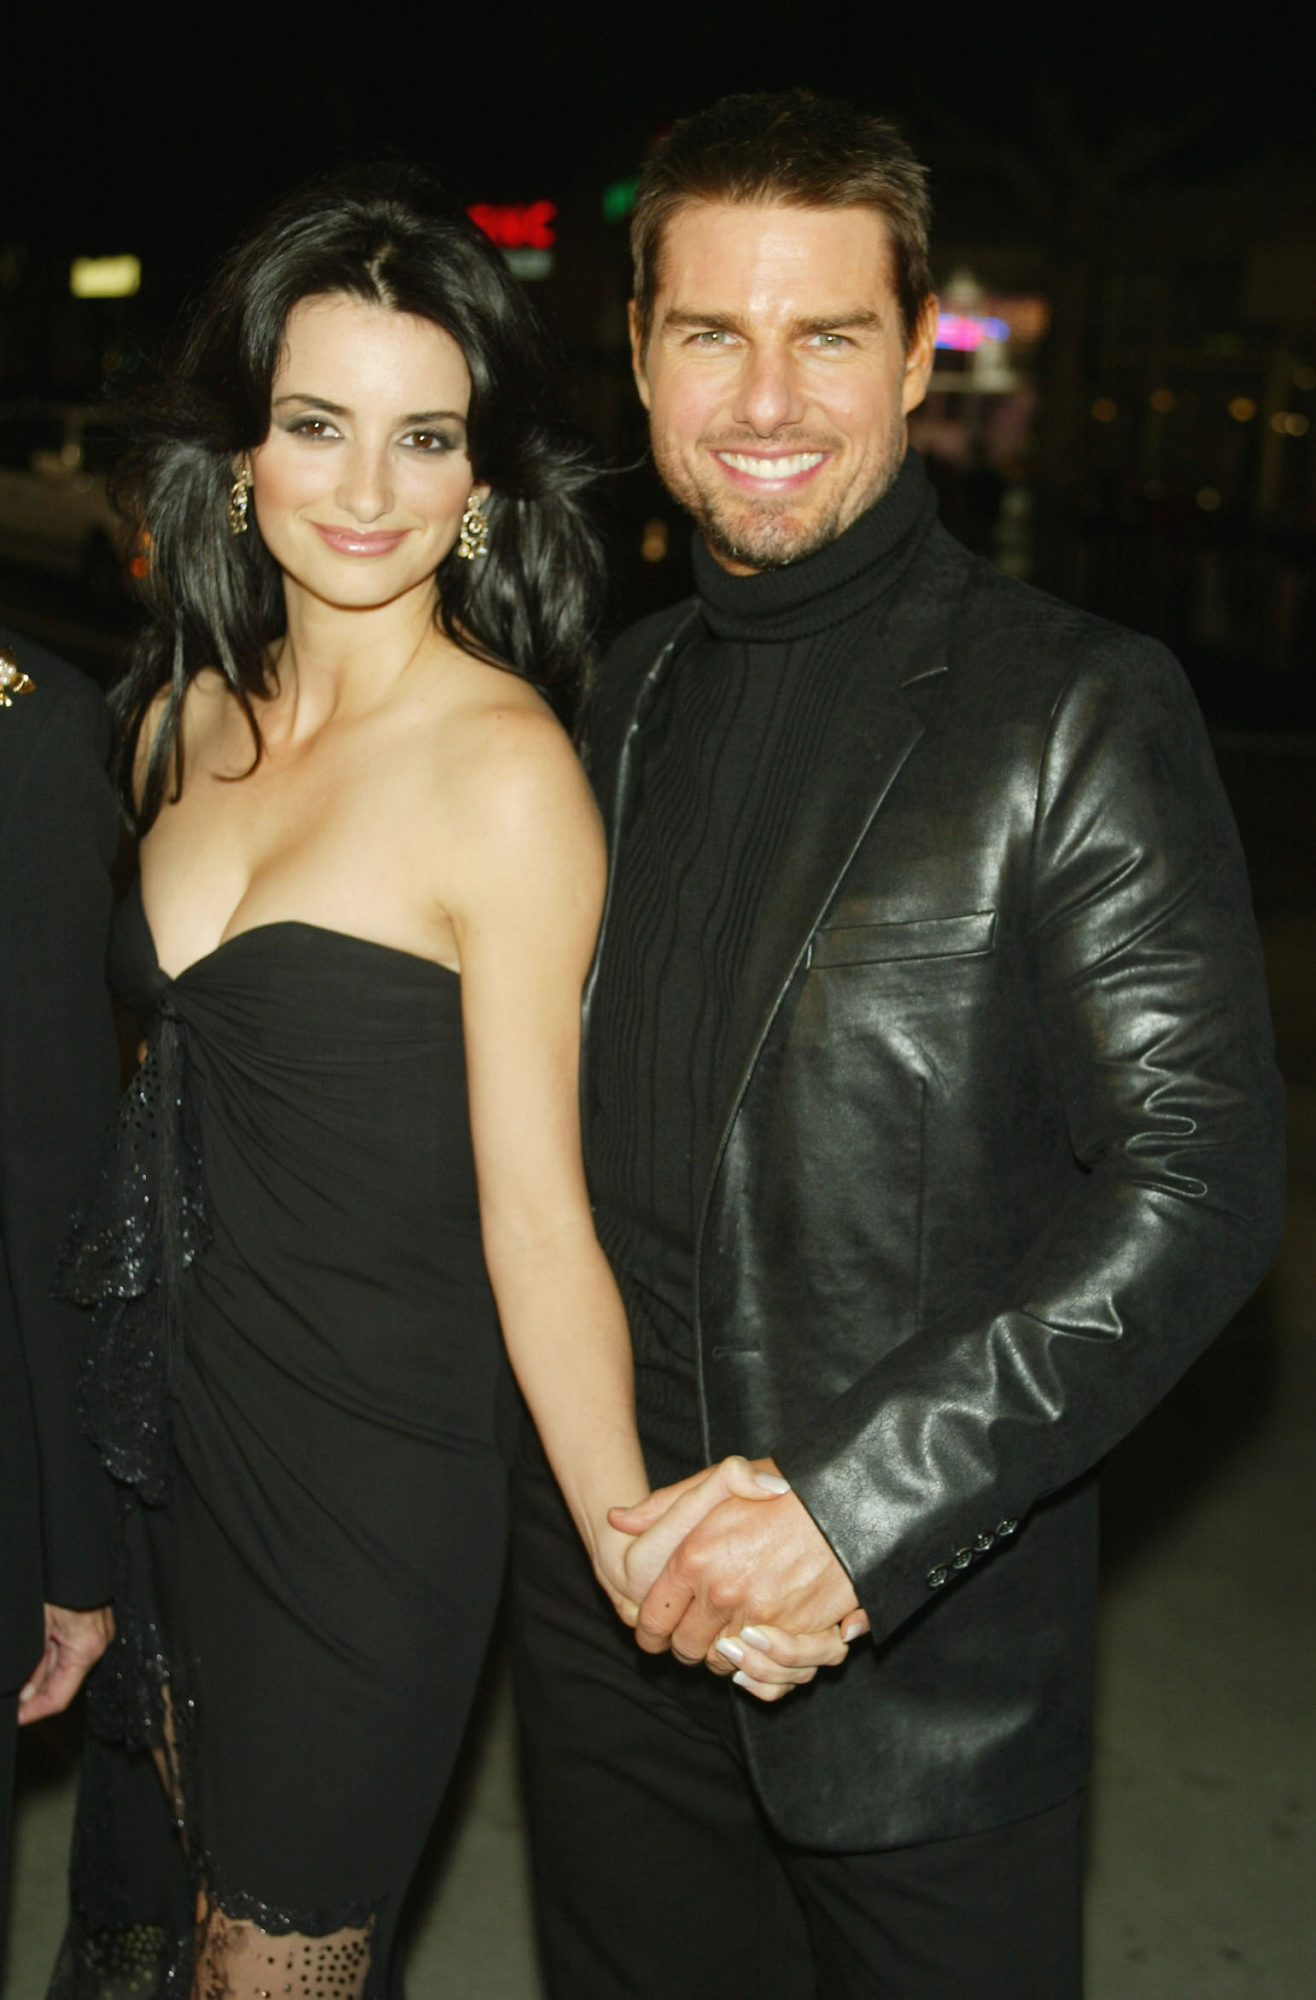 Penelope Cruz & Tom Cruise - The Last Samurai Premiere